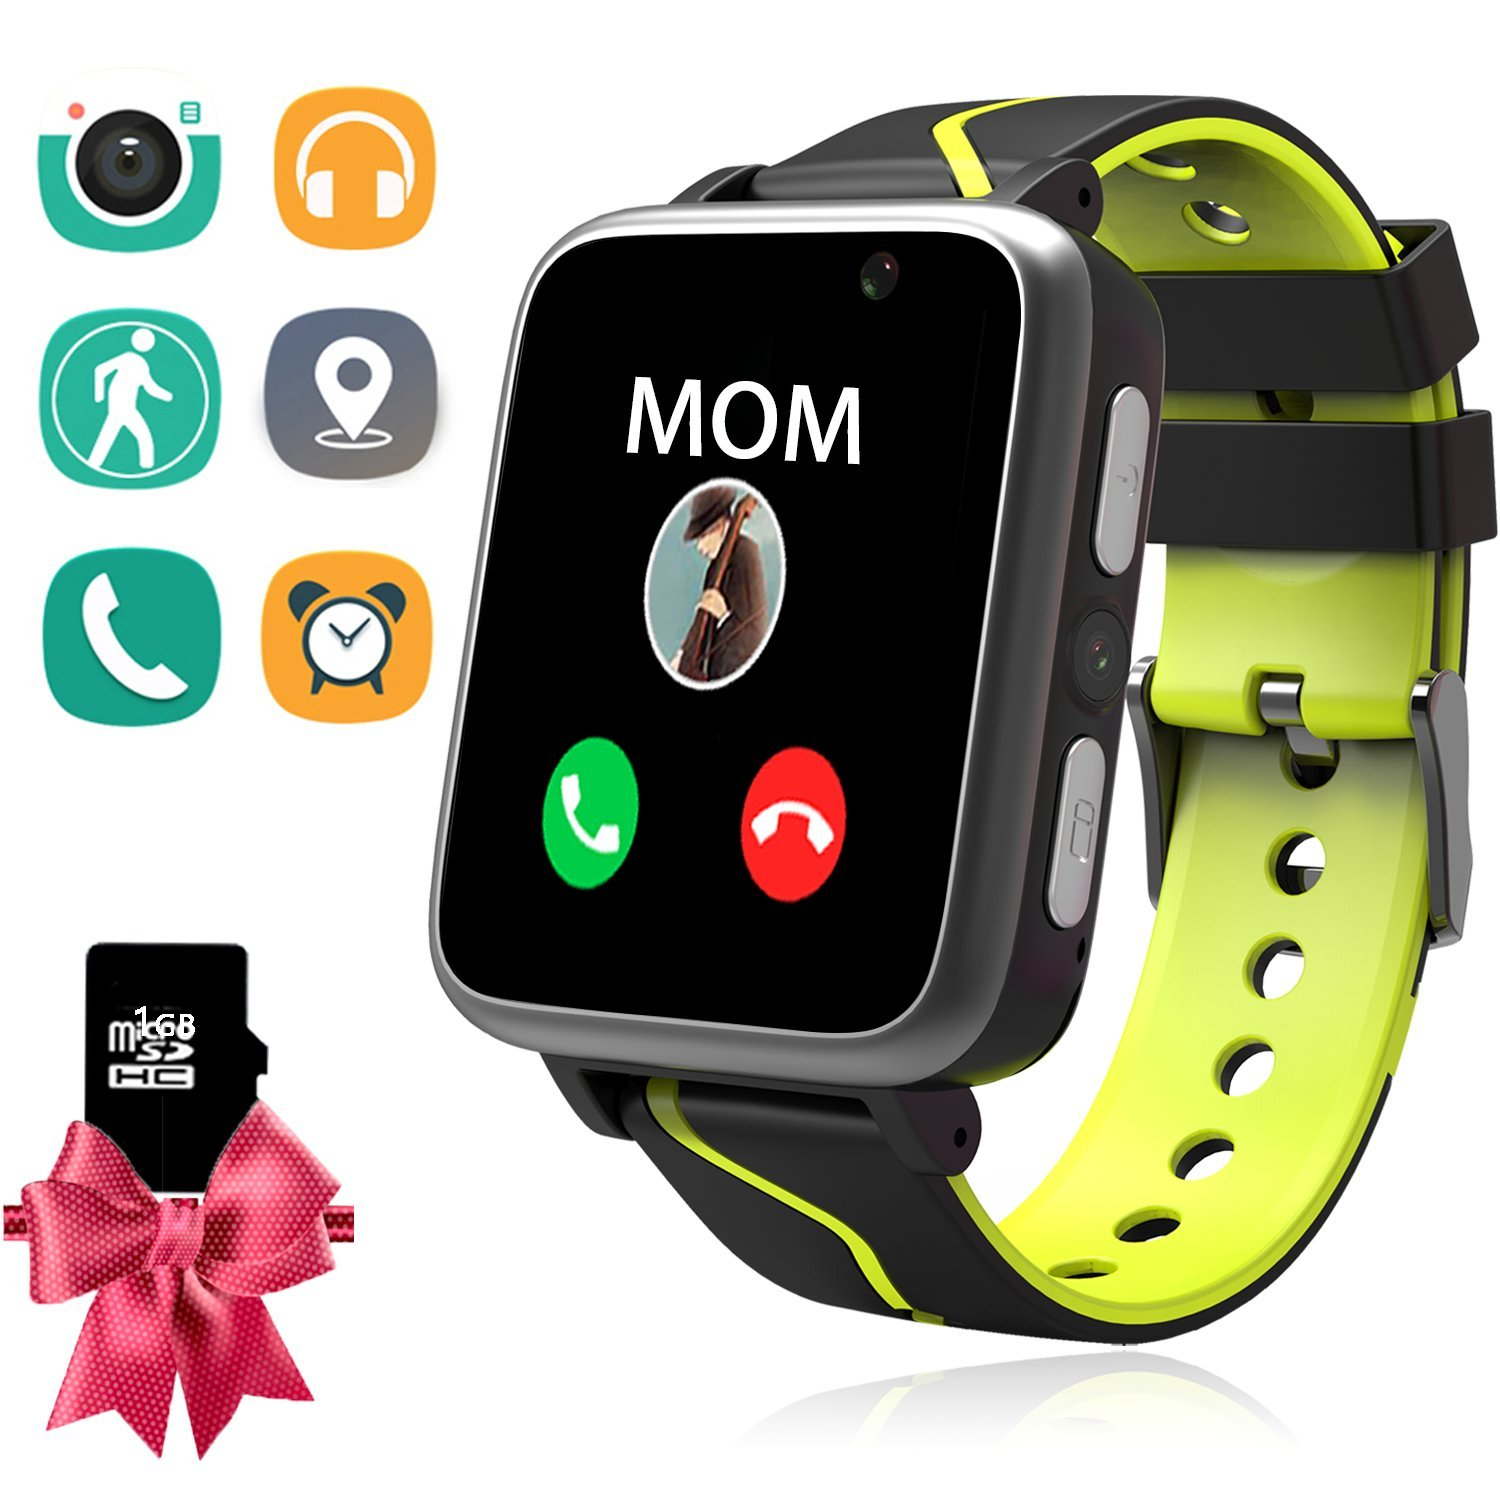 Kids Music Watch - Children Smart Watch with MP3 Music Player [1GB Micro SD Included] FM Pedometer Camera FM SOS Alarm Clock Flashlight for Boys Girls Back to School Students Gifts (Black)